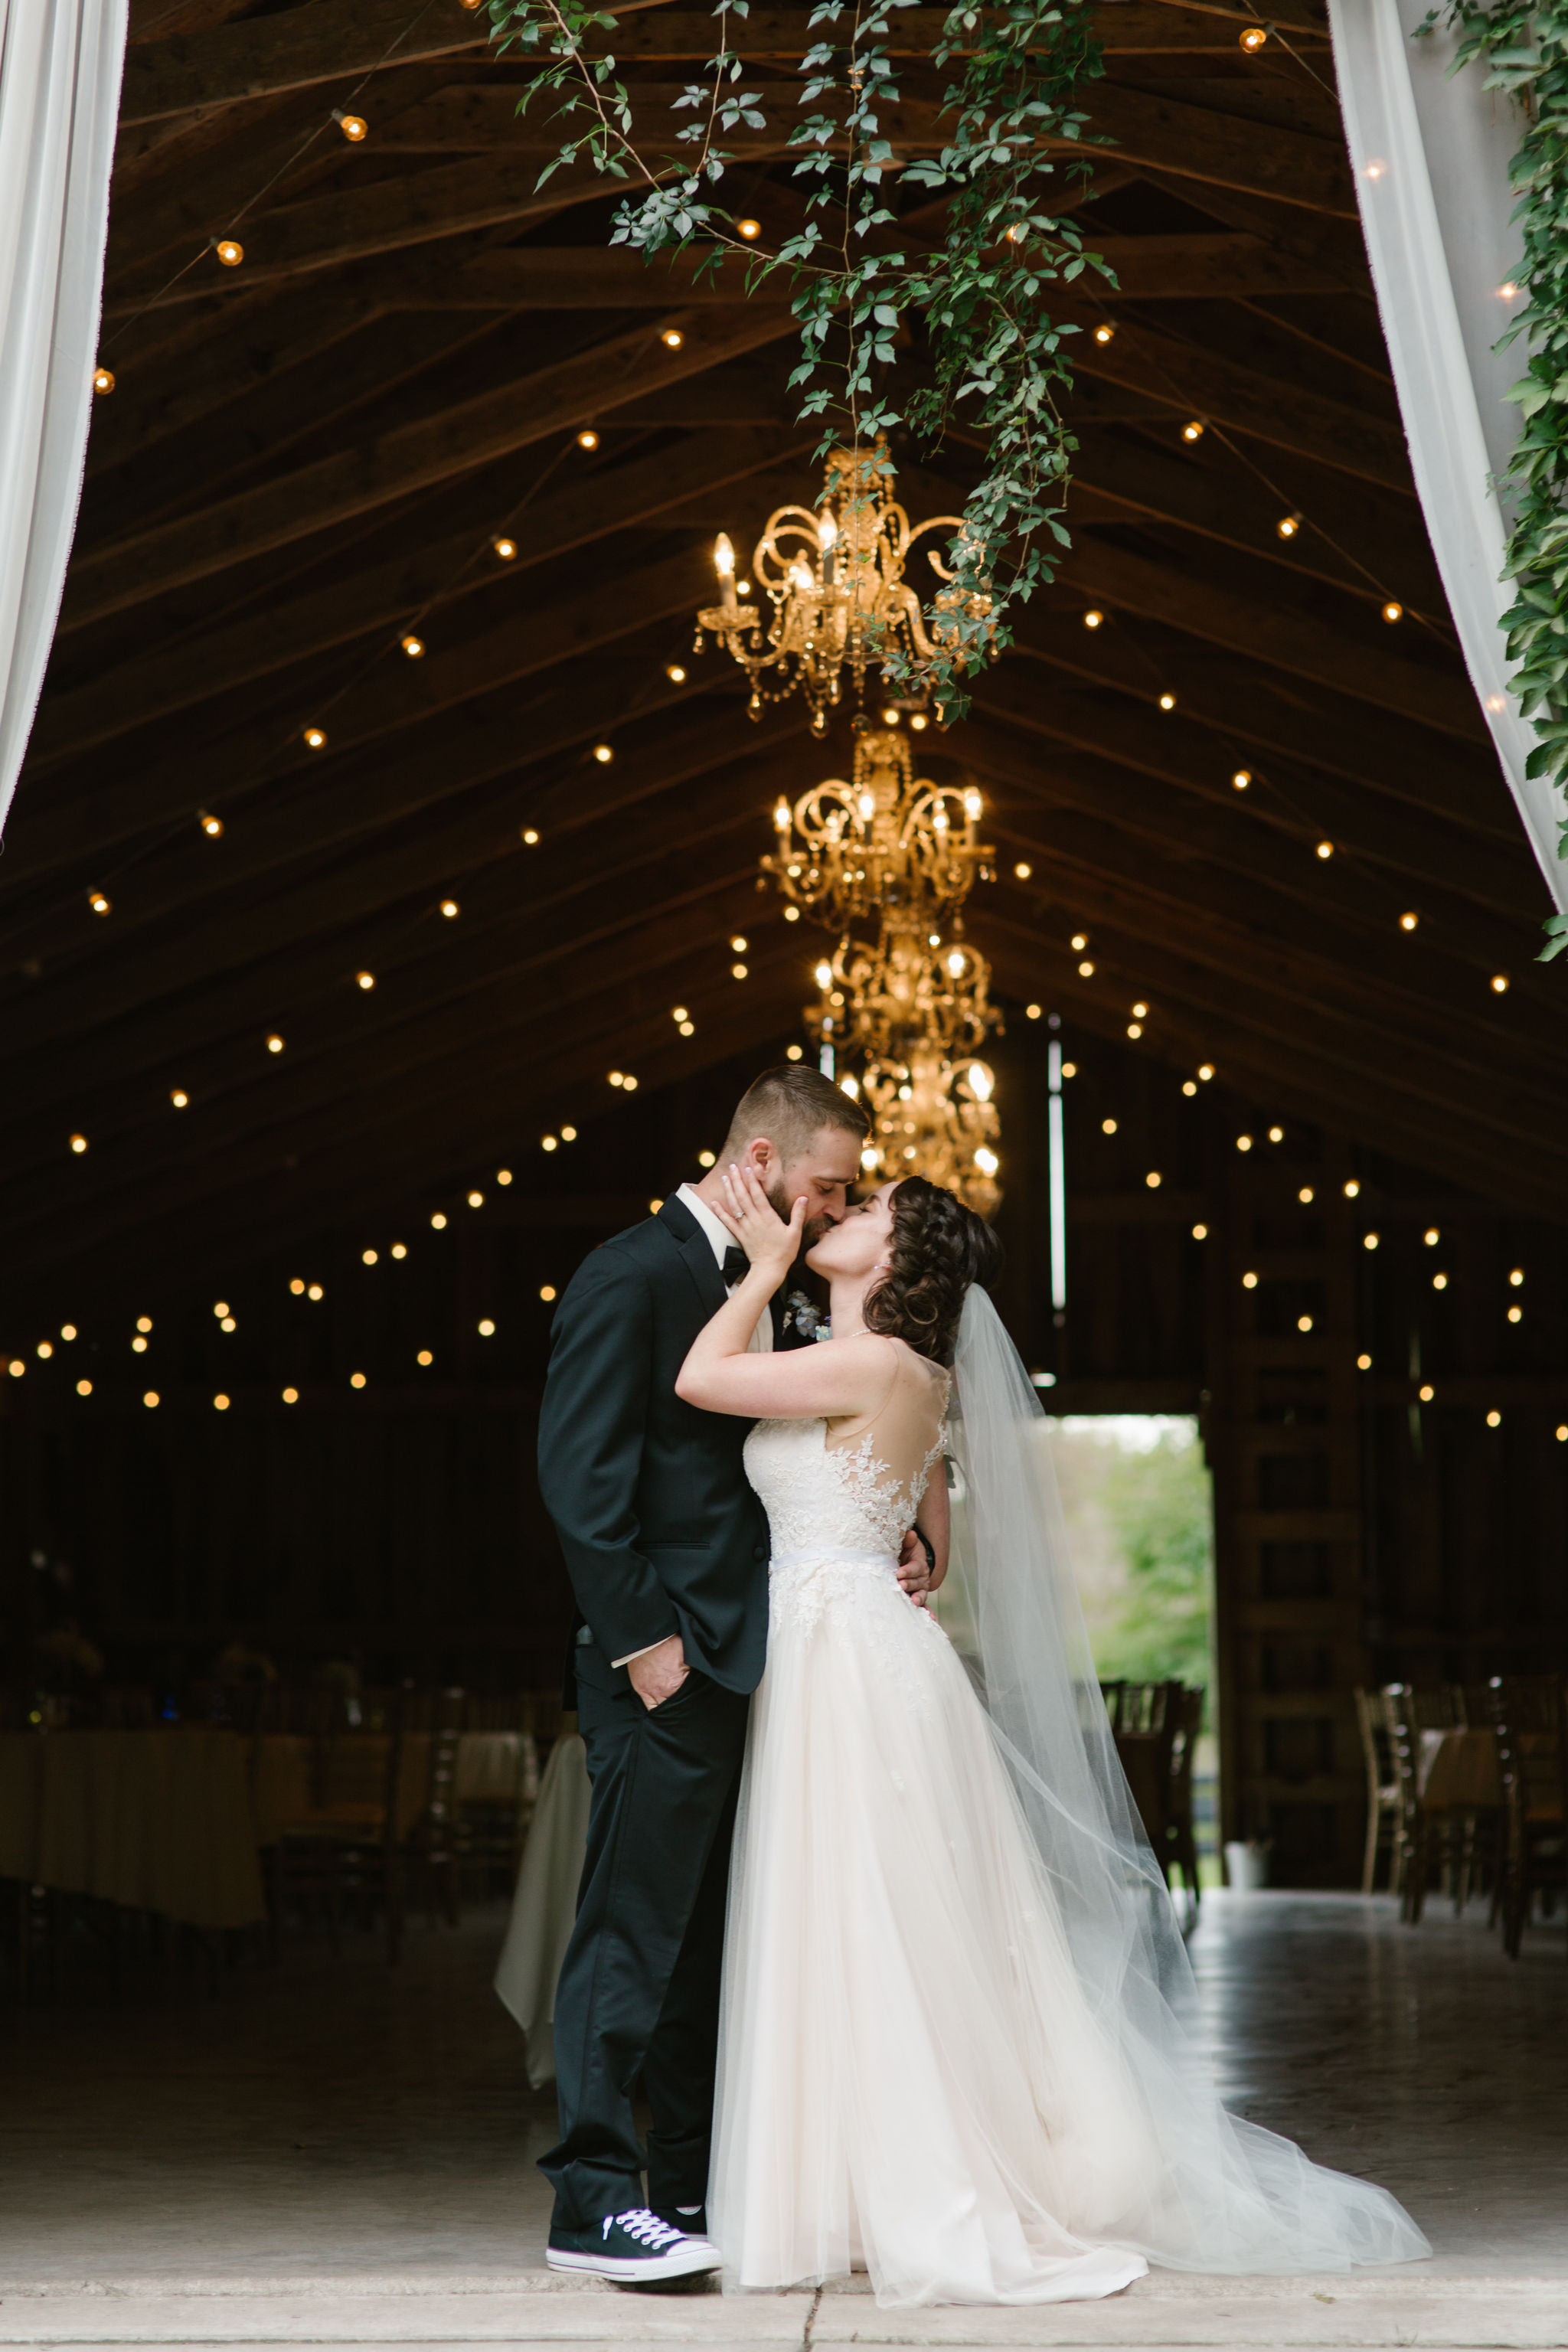 Kellsey&JasonWedding(Final)-175.jpg